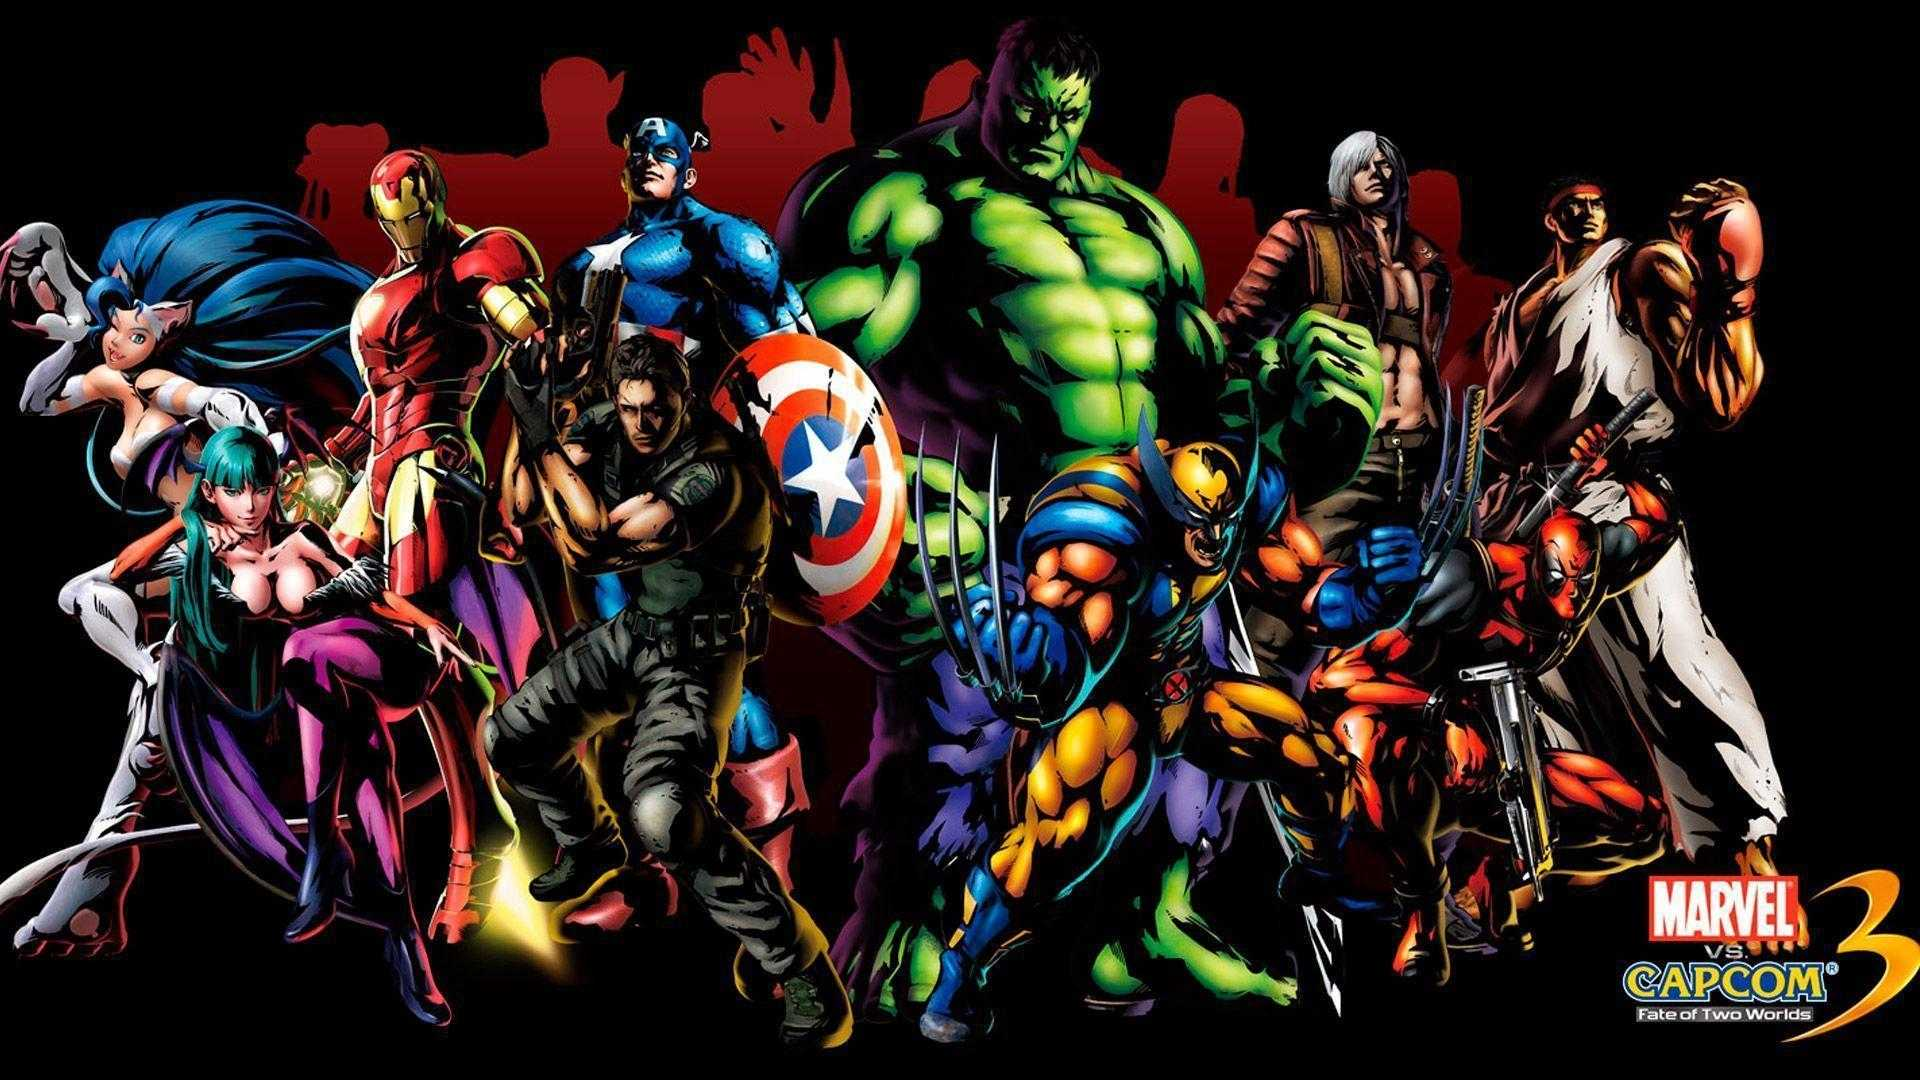 Marvel Desktop Wallpaper Backgrounds Hd Pics For Androids